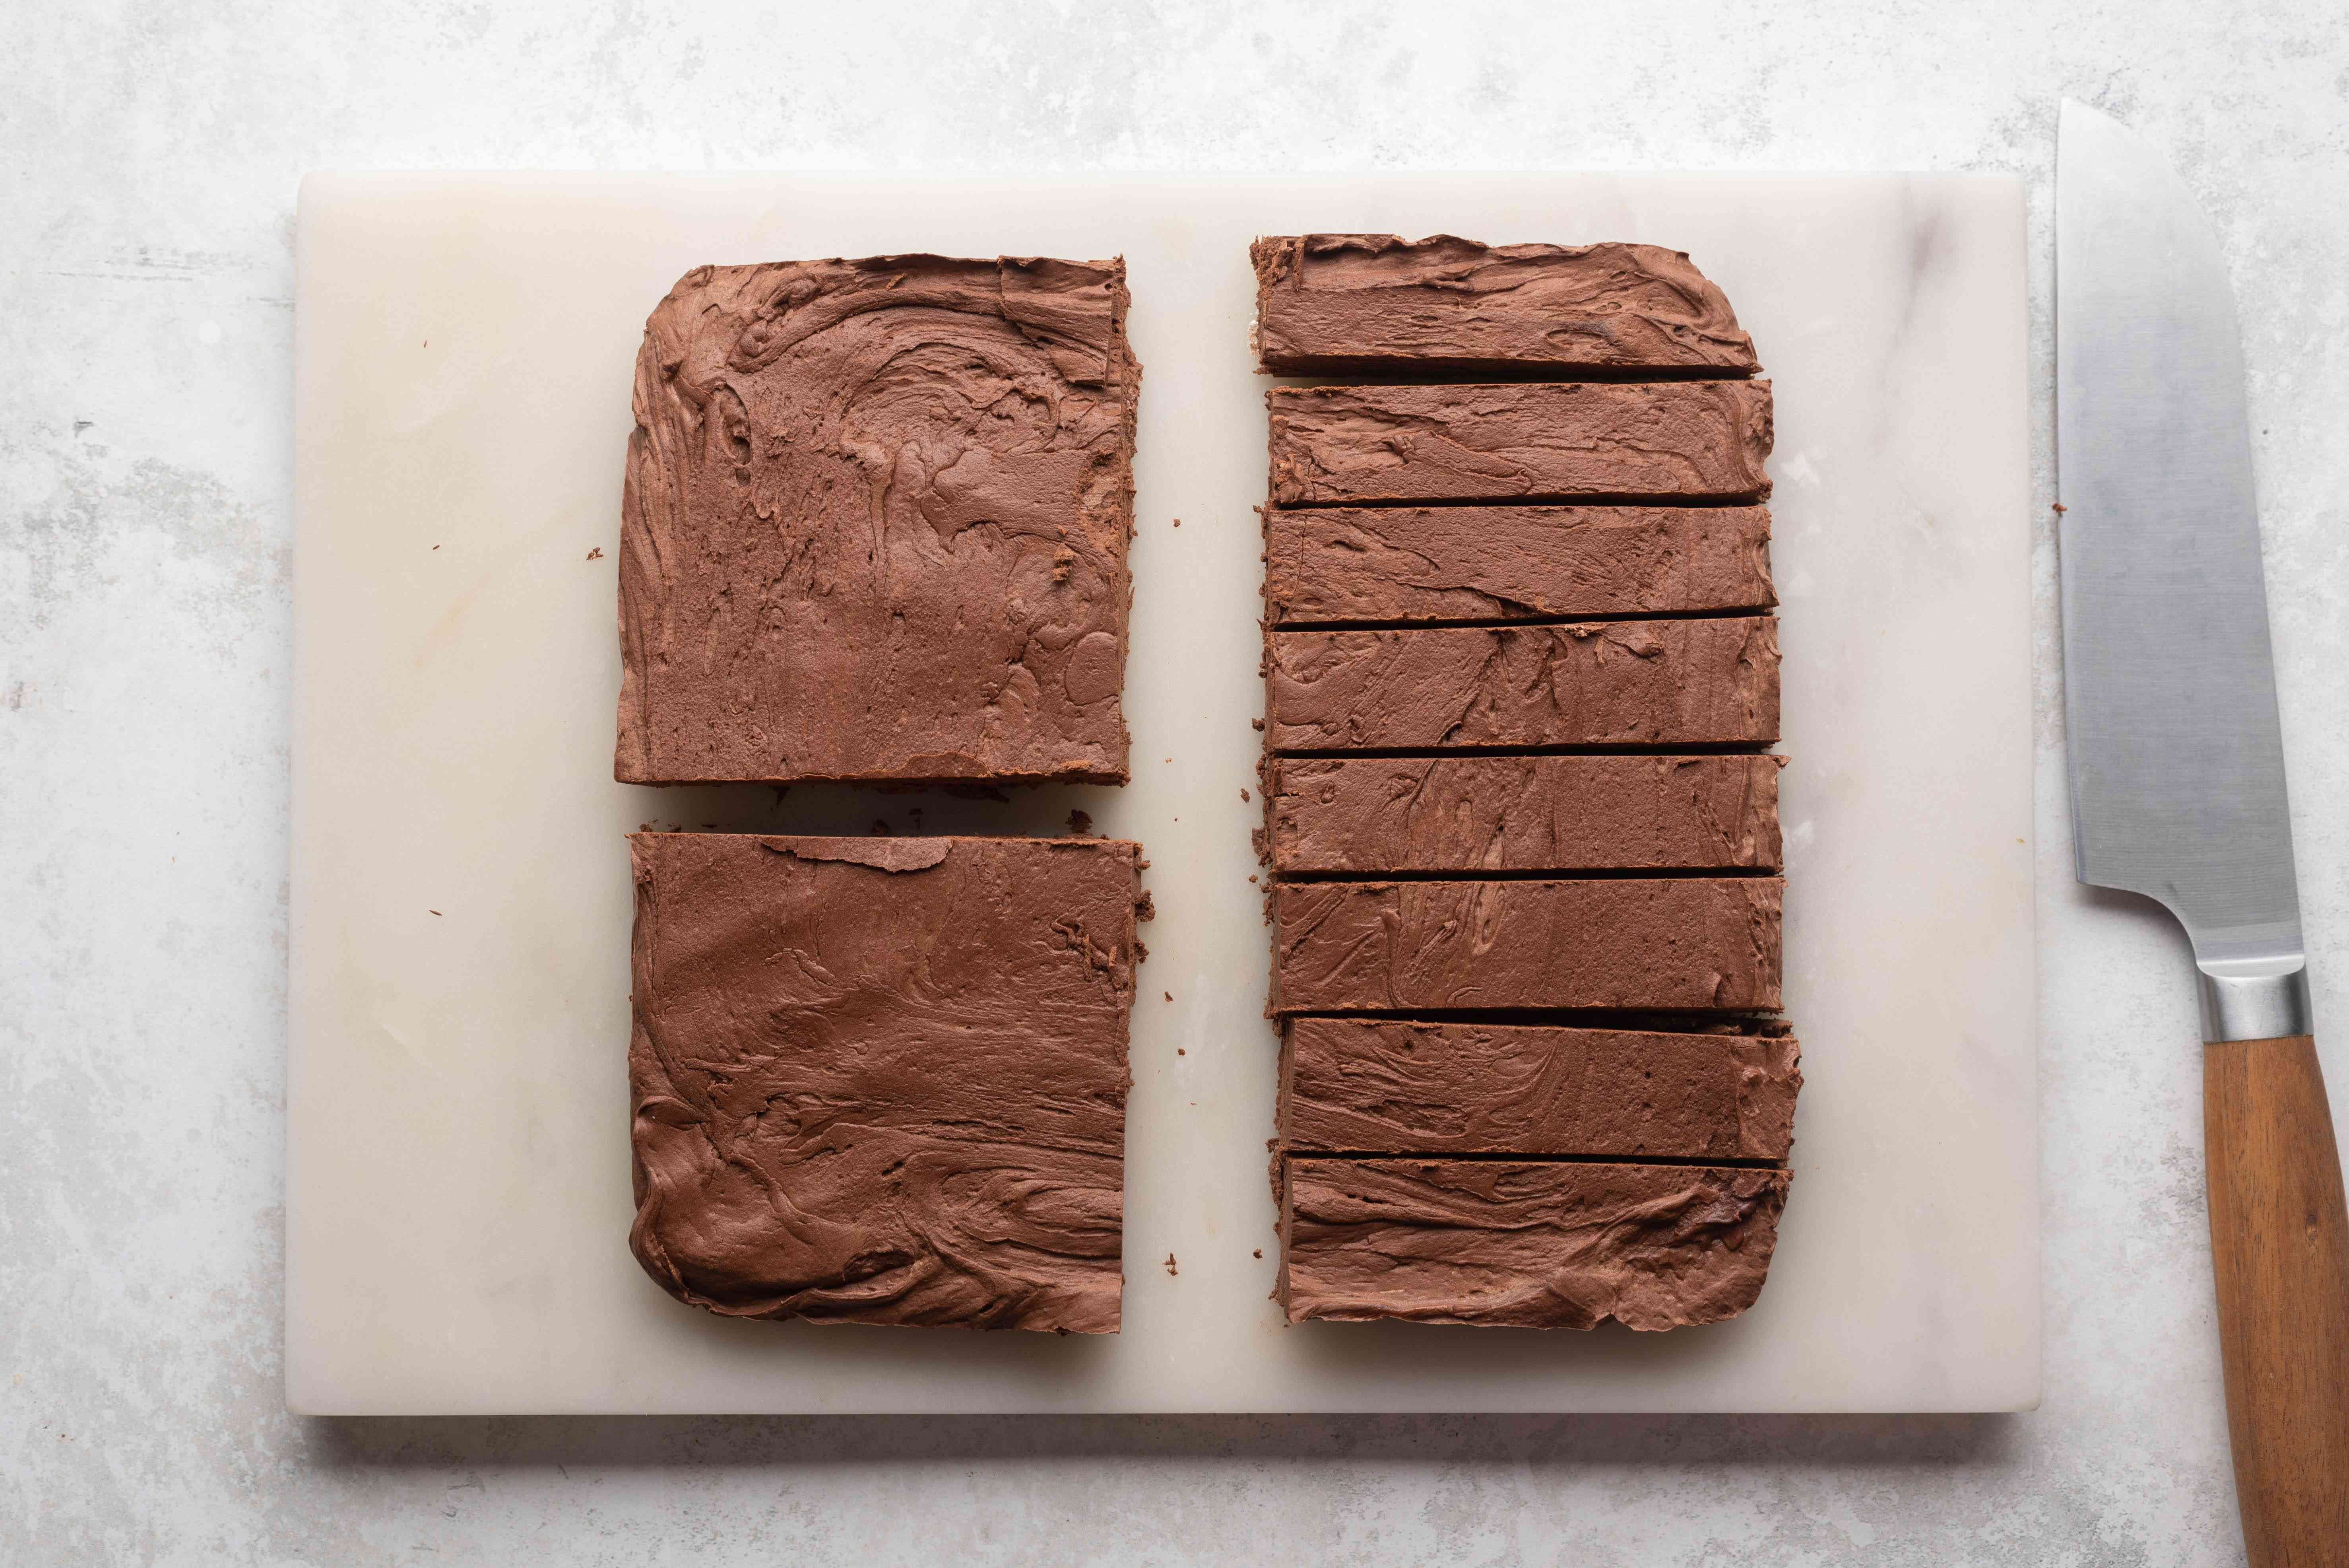 fudge removed from the baking pan and cut into pieces